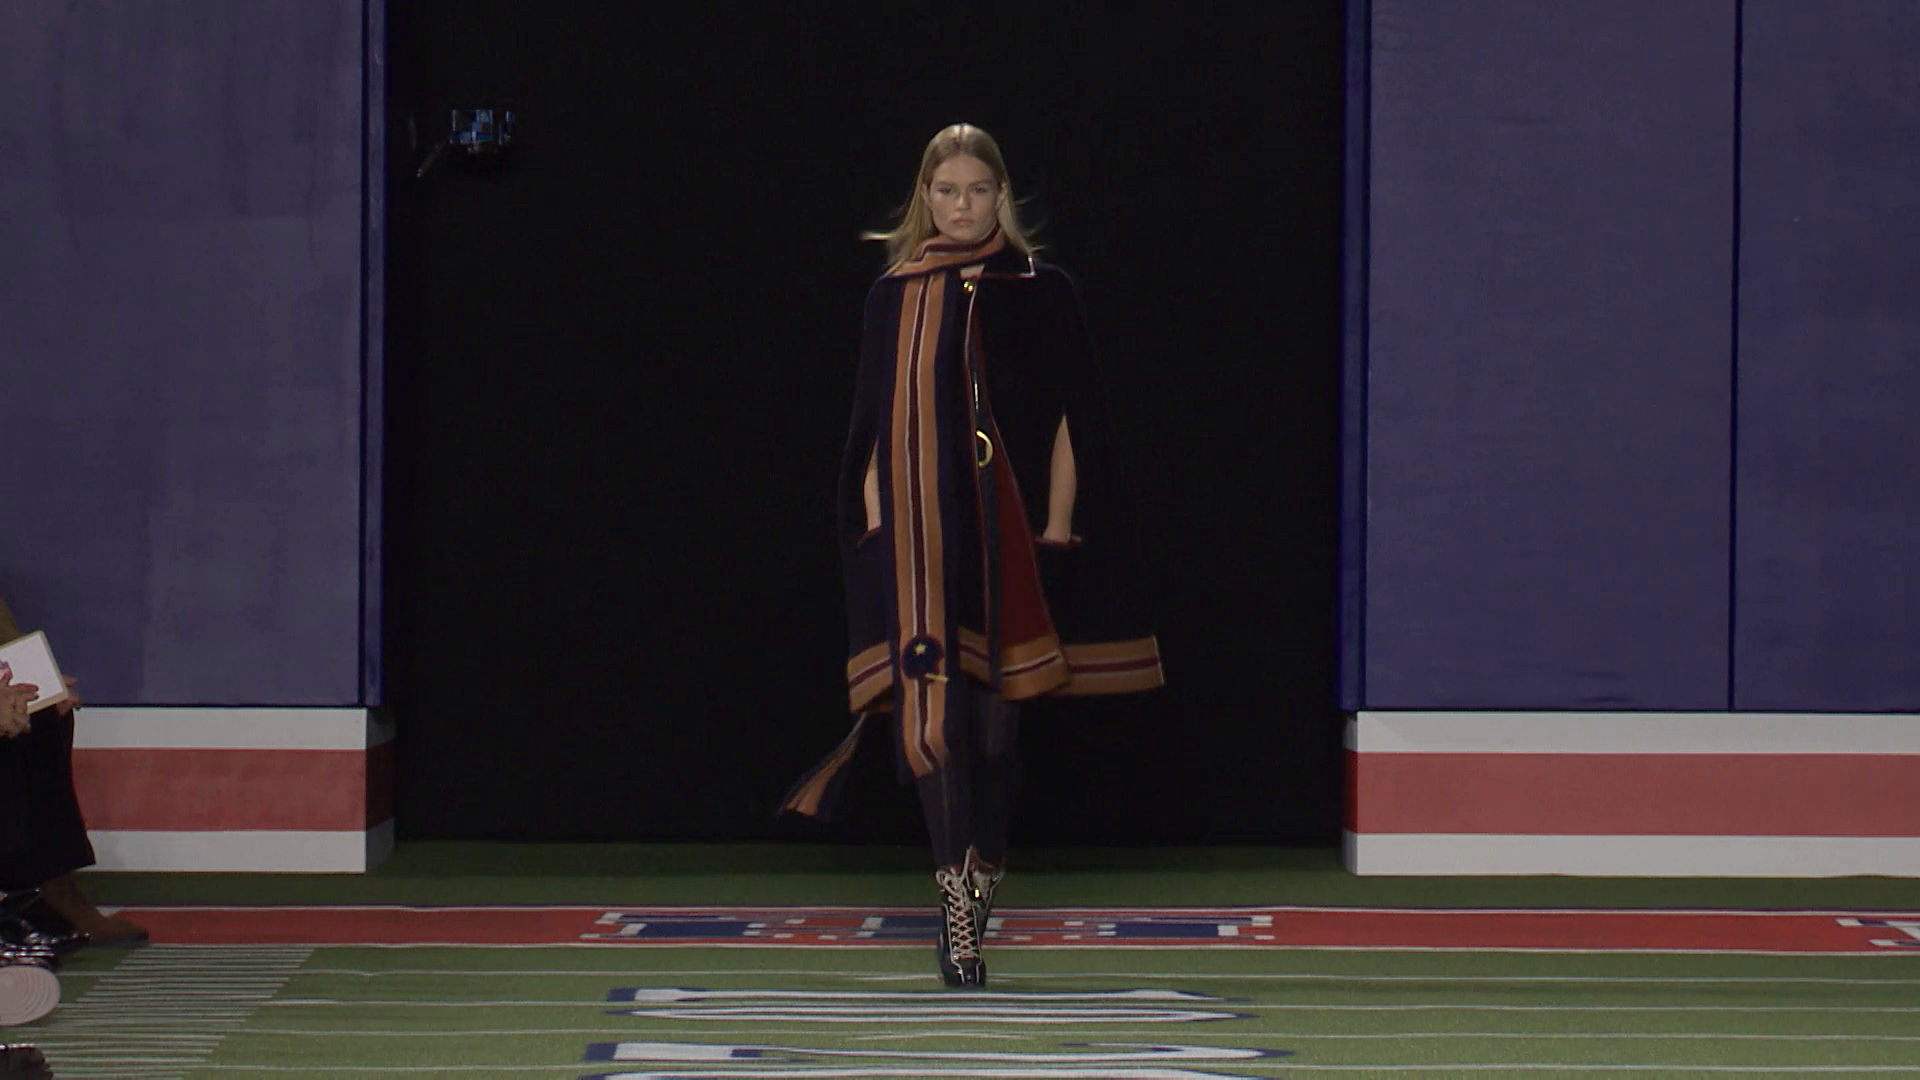 Tommy Hilfiger Fall Winter 2015-16 Women's Fashion Show - New York Fashion Week